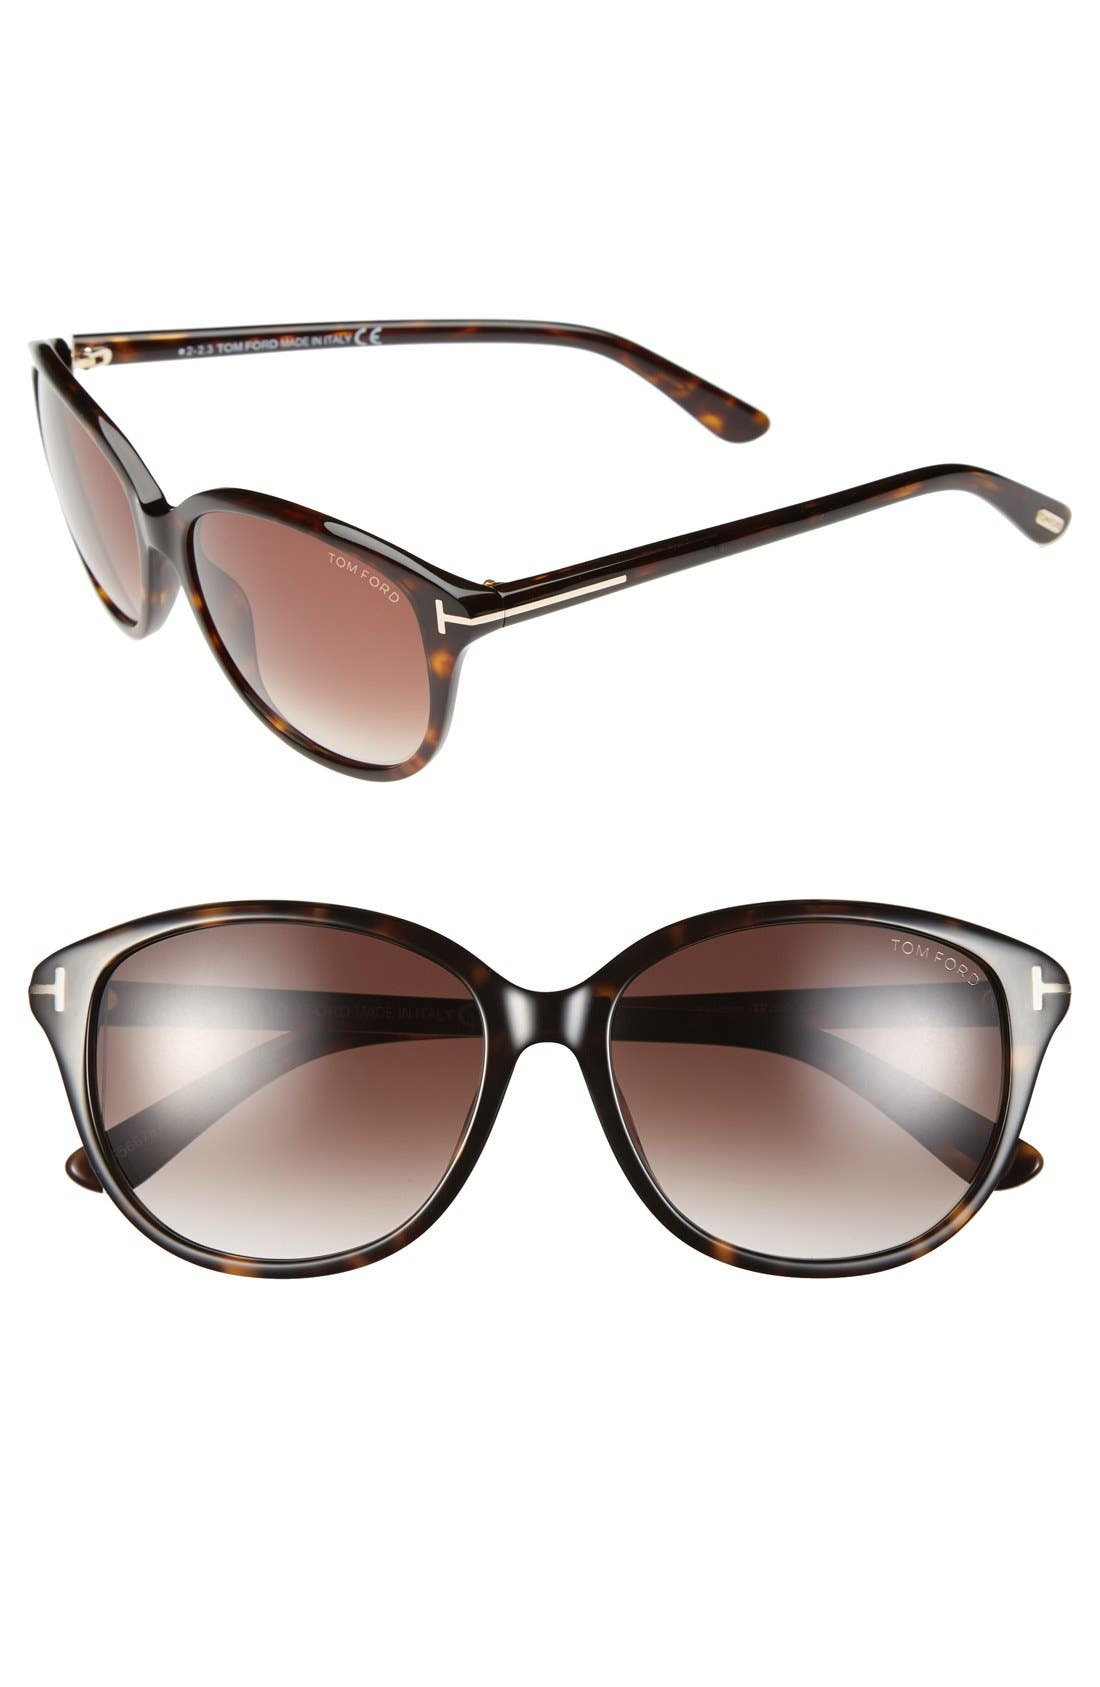 Main Image - Tom Ford 'Karmen' 57mm Sunglasses